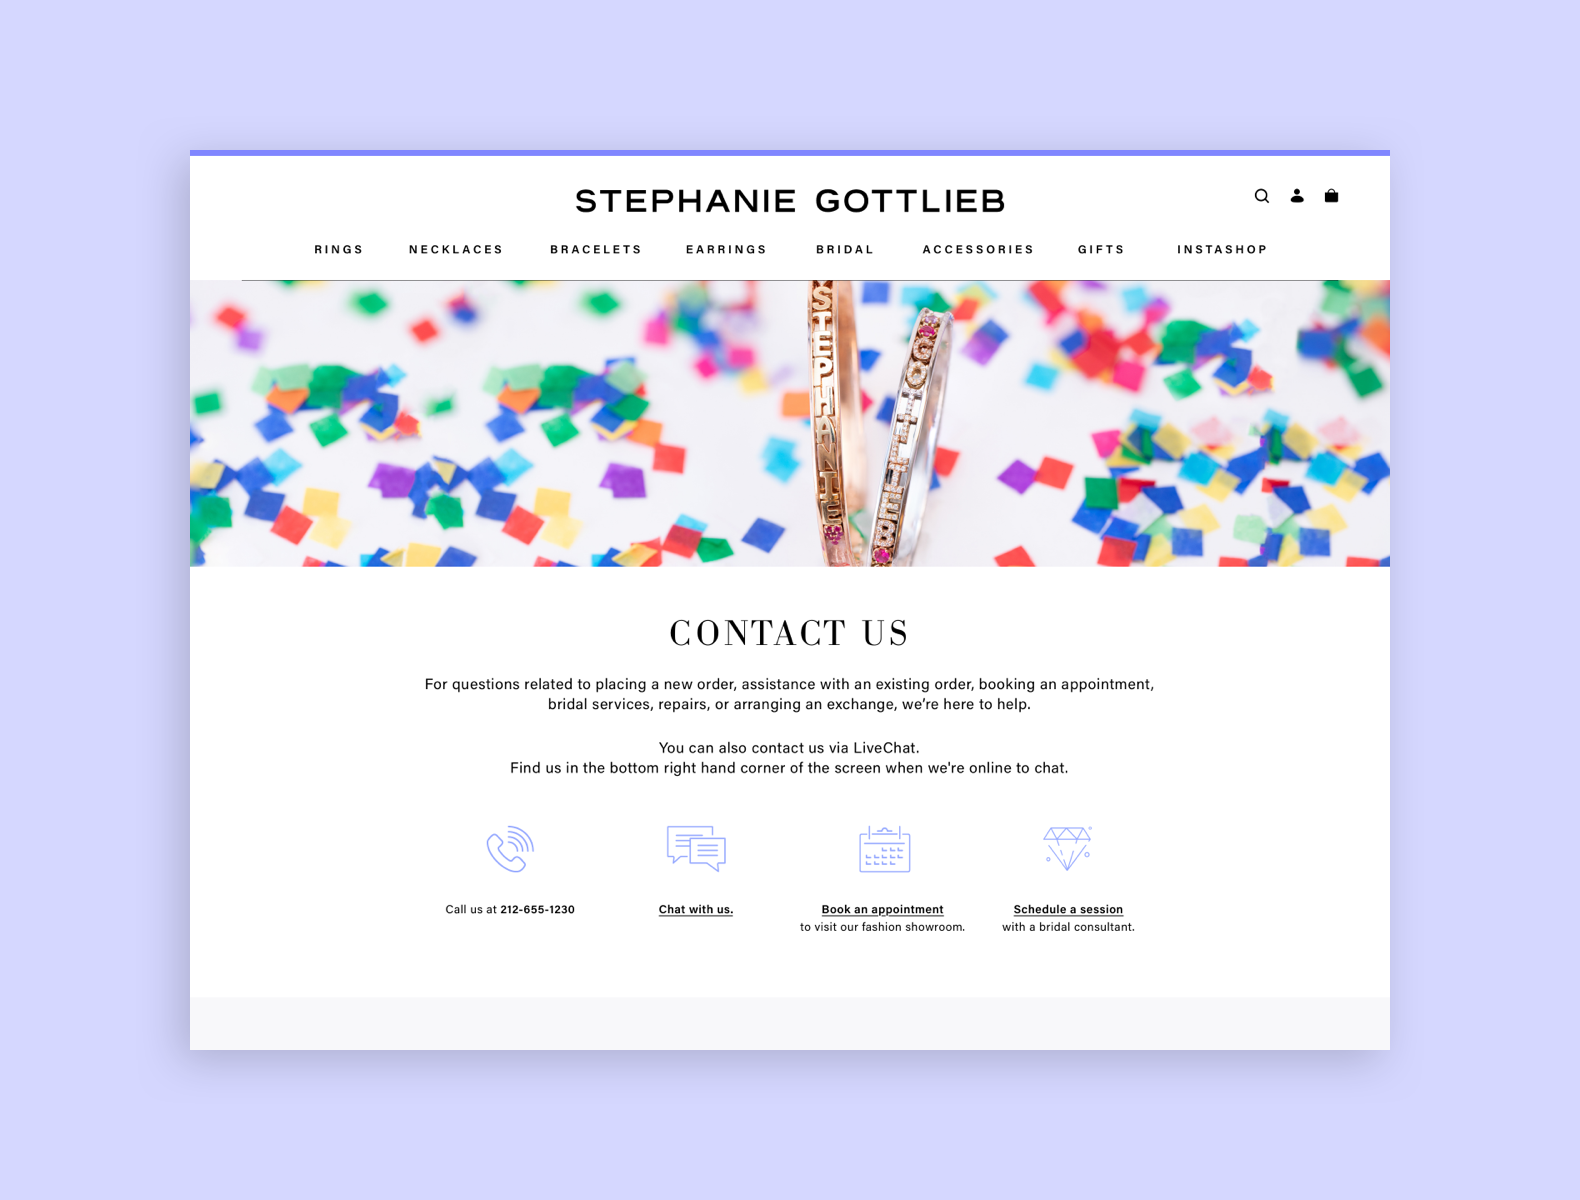 Stephanie Gottlieb Contact Us